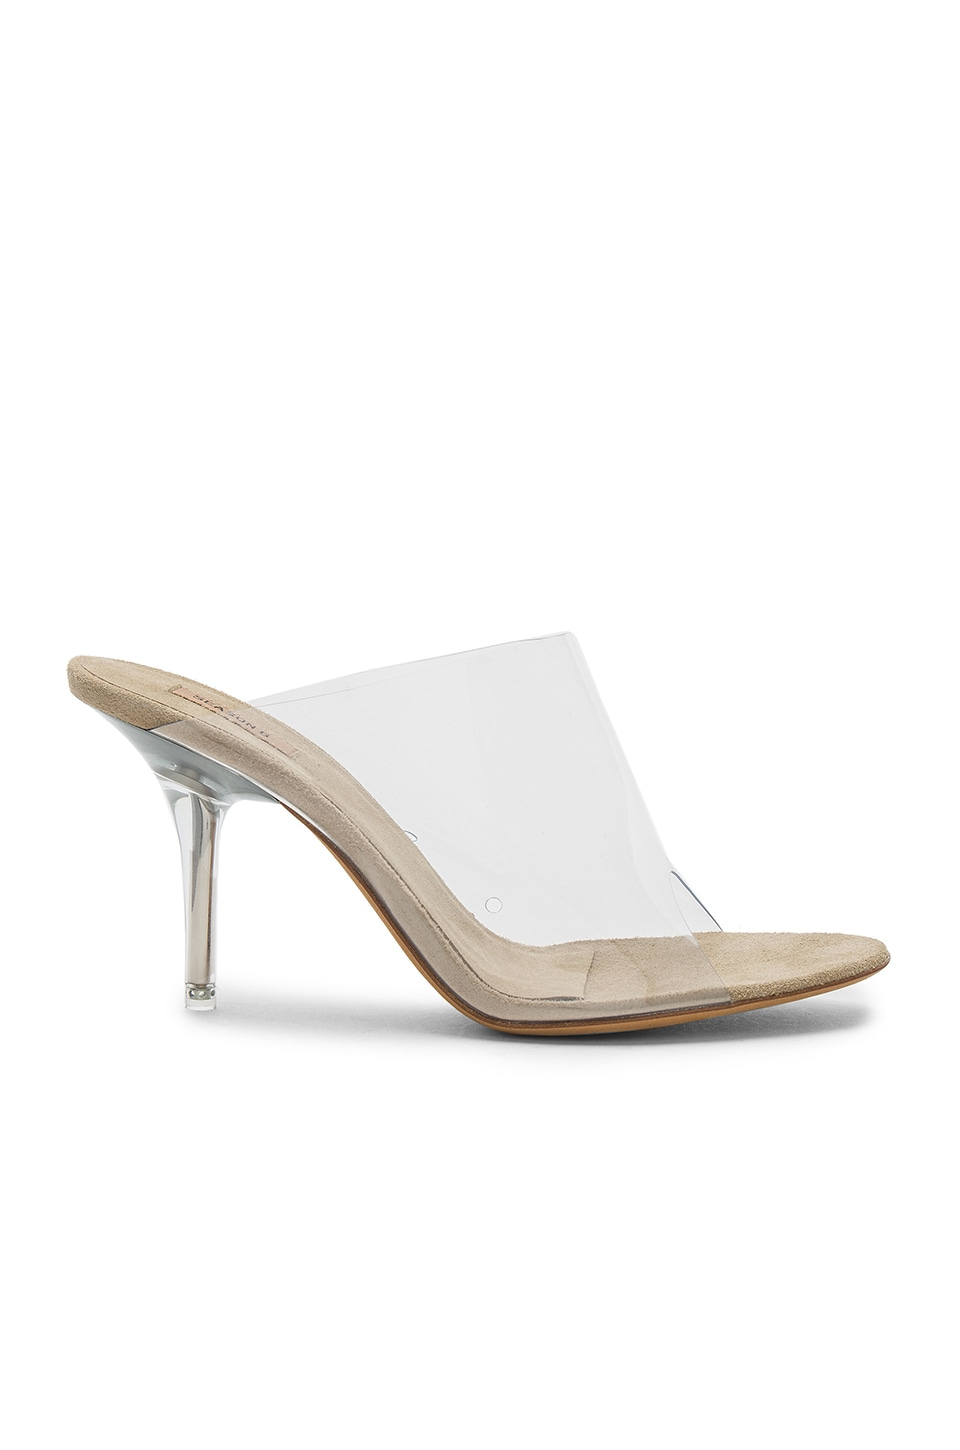 YEEZY Season 6 Mule Heel in Clear